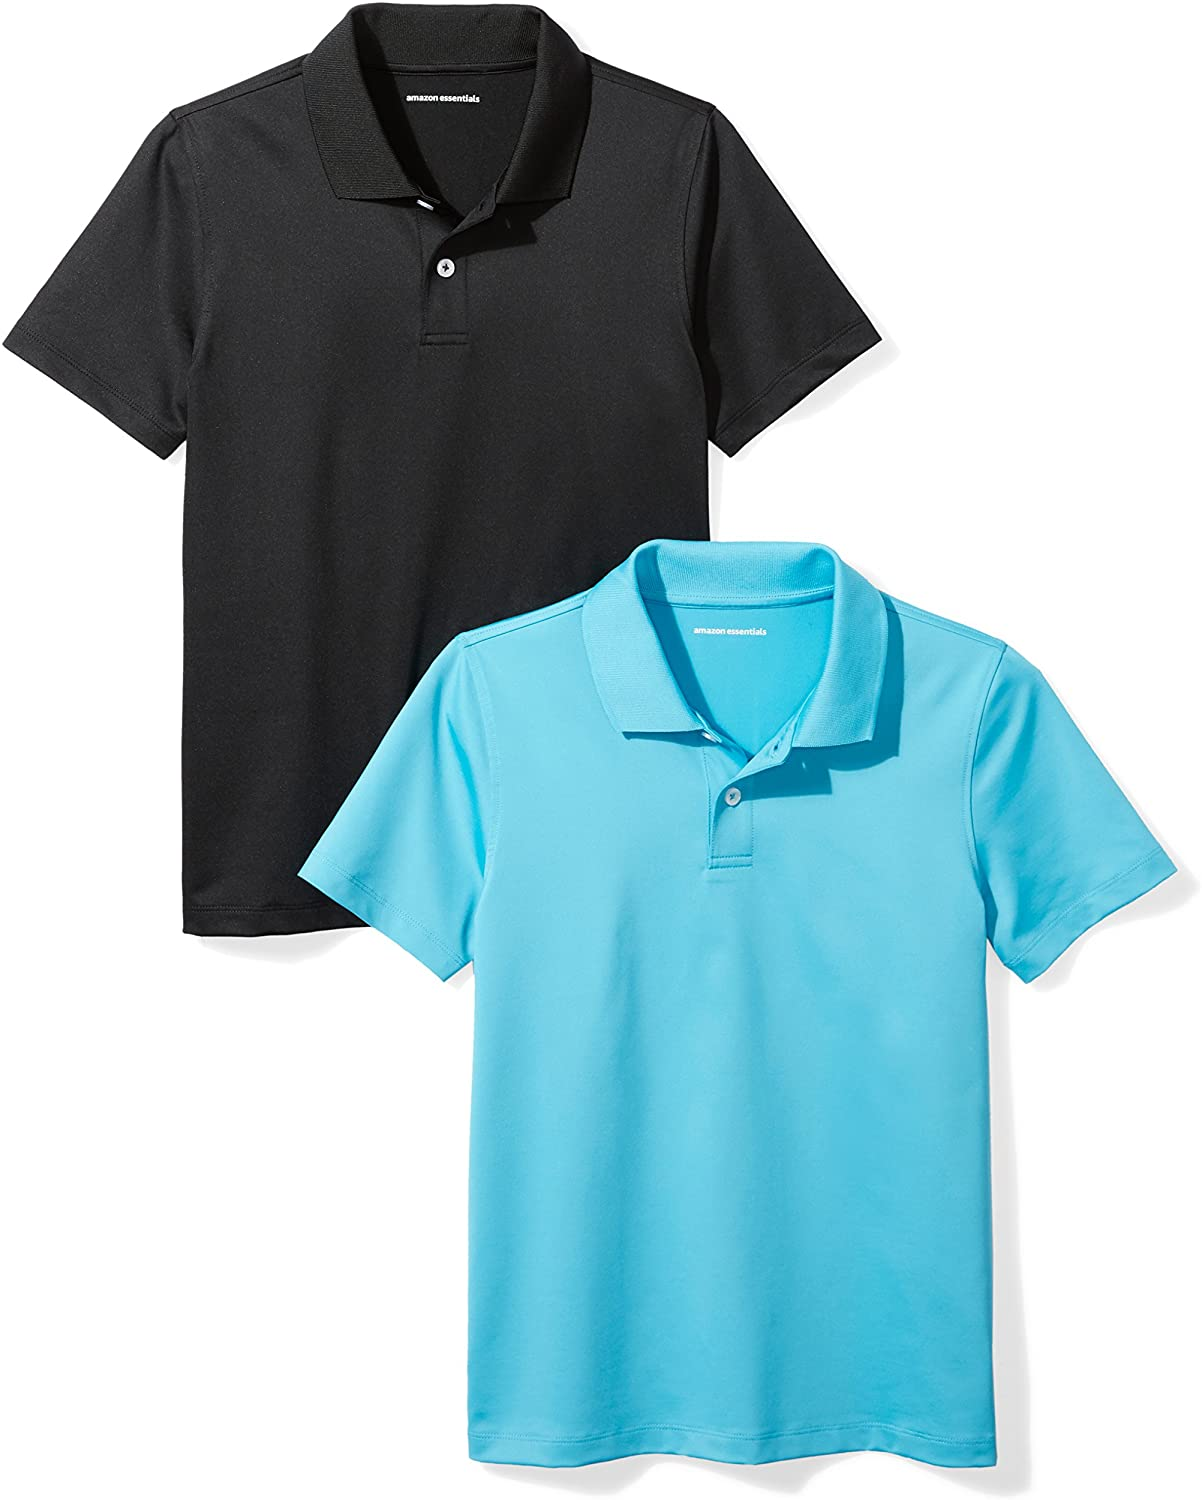 Essentials Little Boys 2-Pack Performance Polo 4-5 Canyon Blue//Black XS